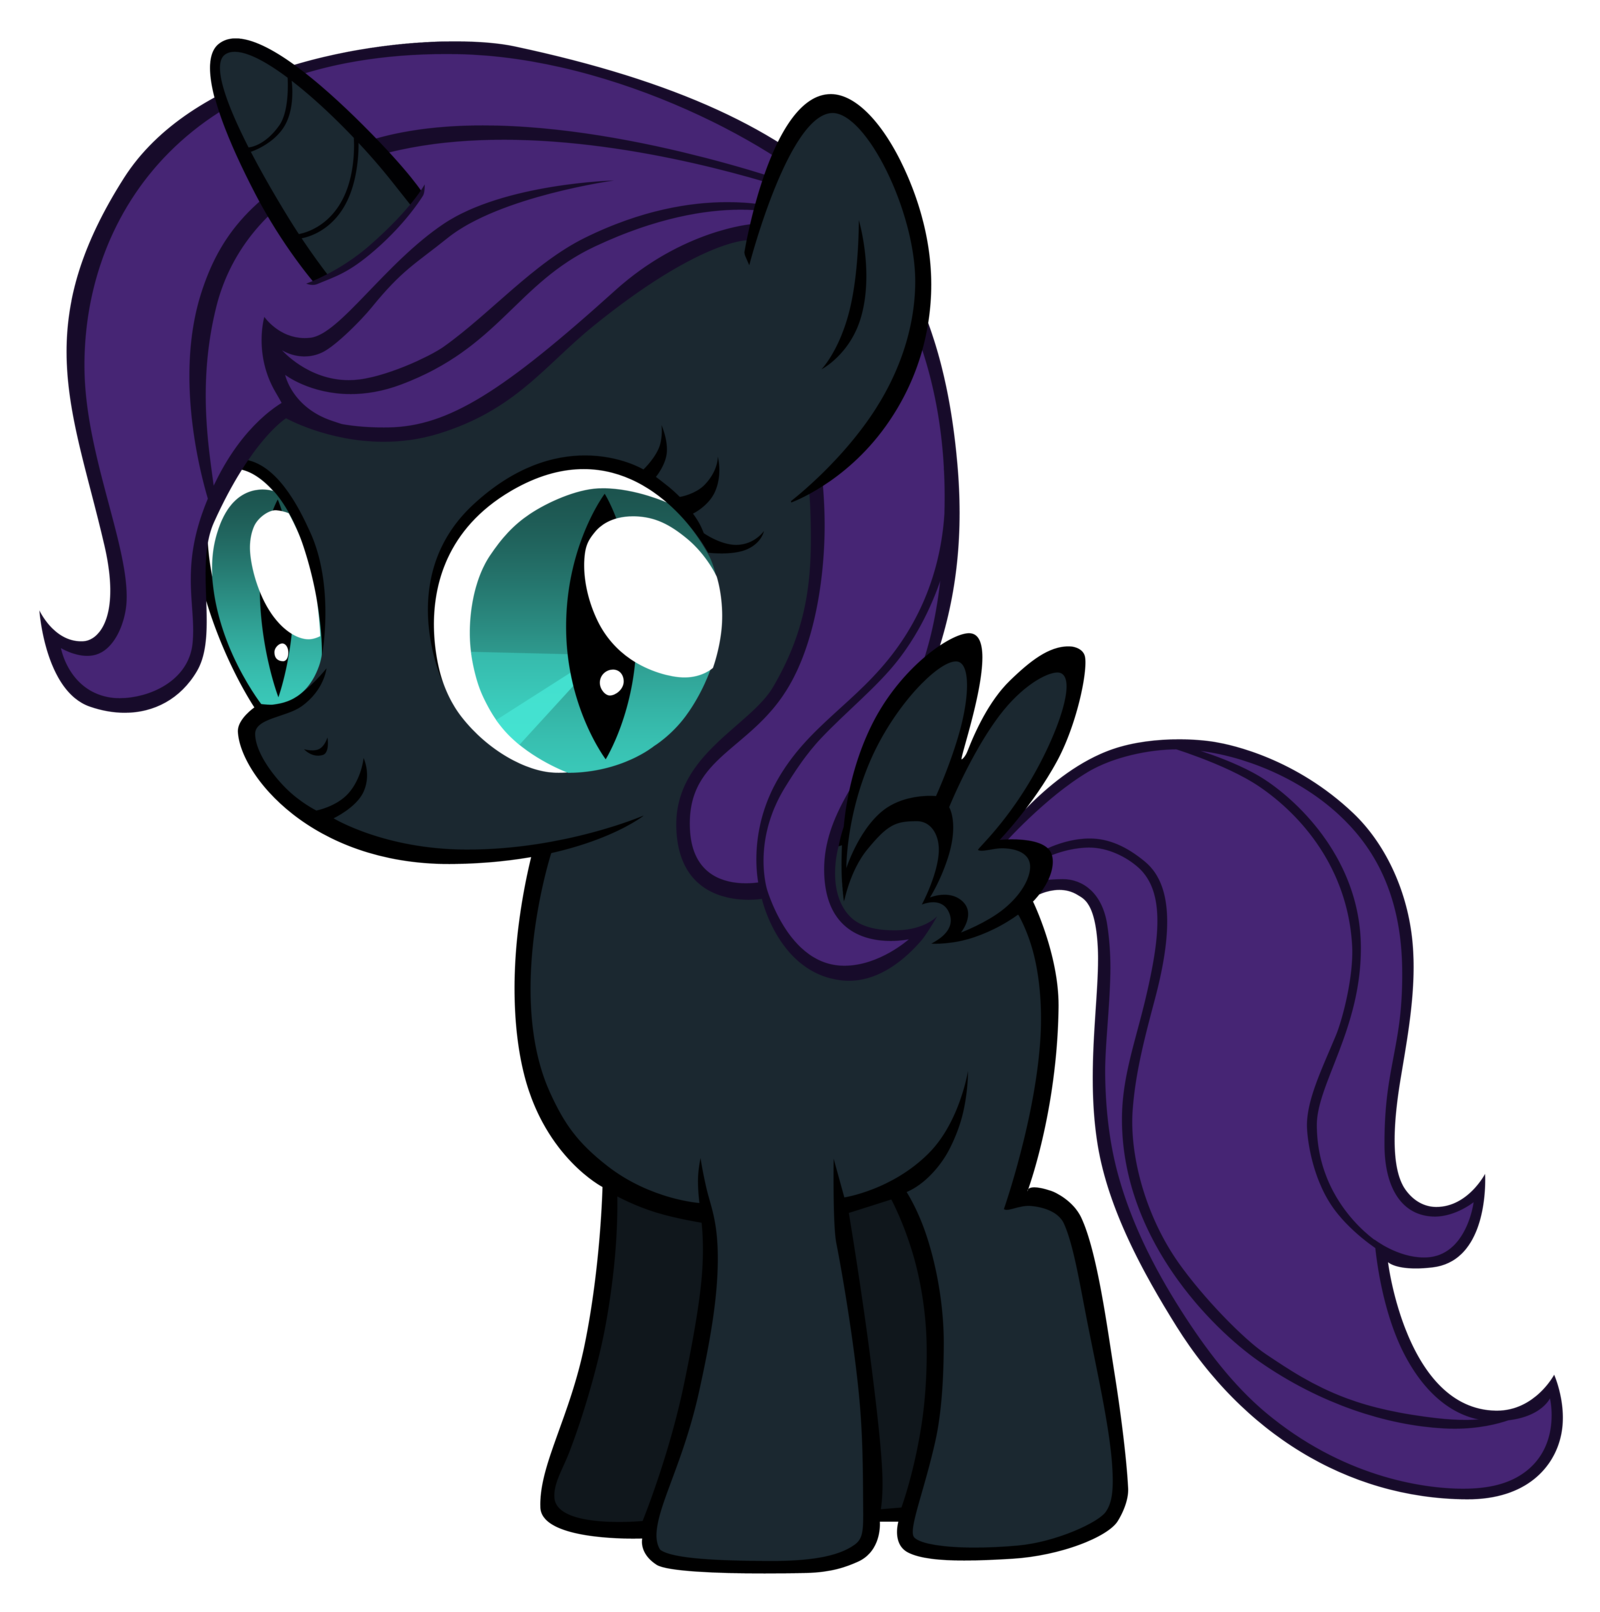 Mlp wiki confused png. Nyx my little pony